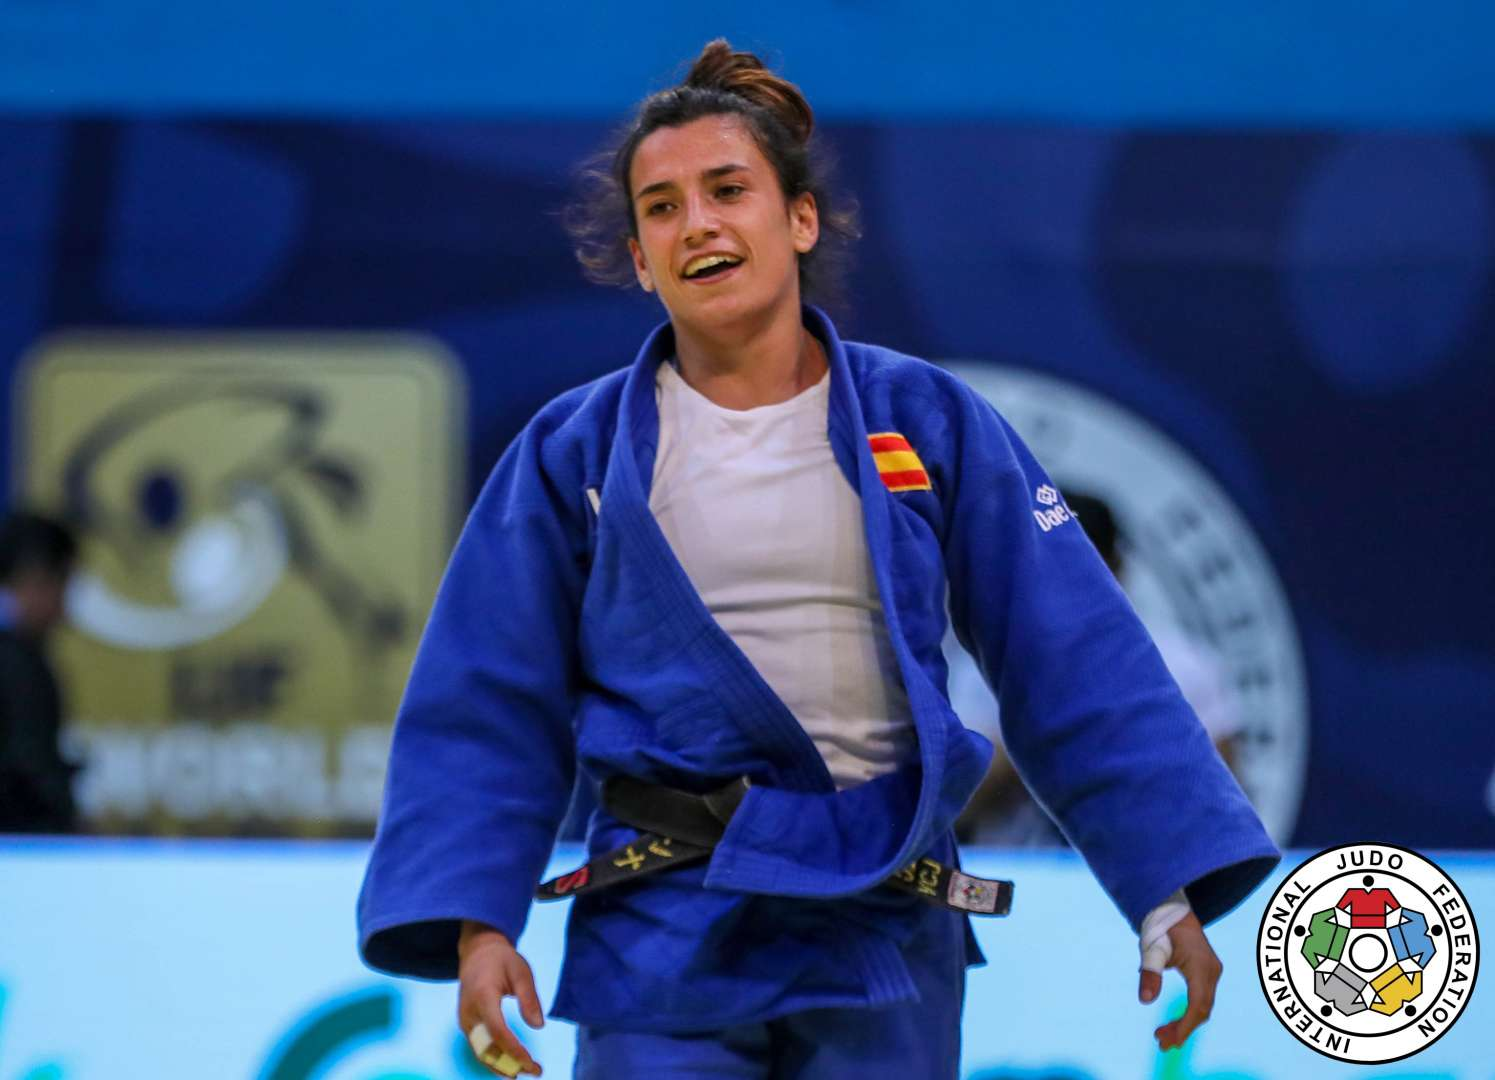 20181012_ijf_cancun_ana_perez_box_esp